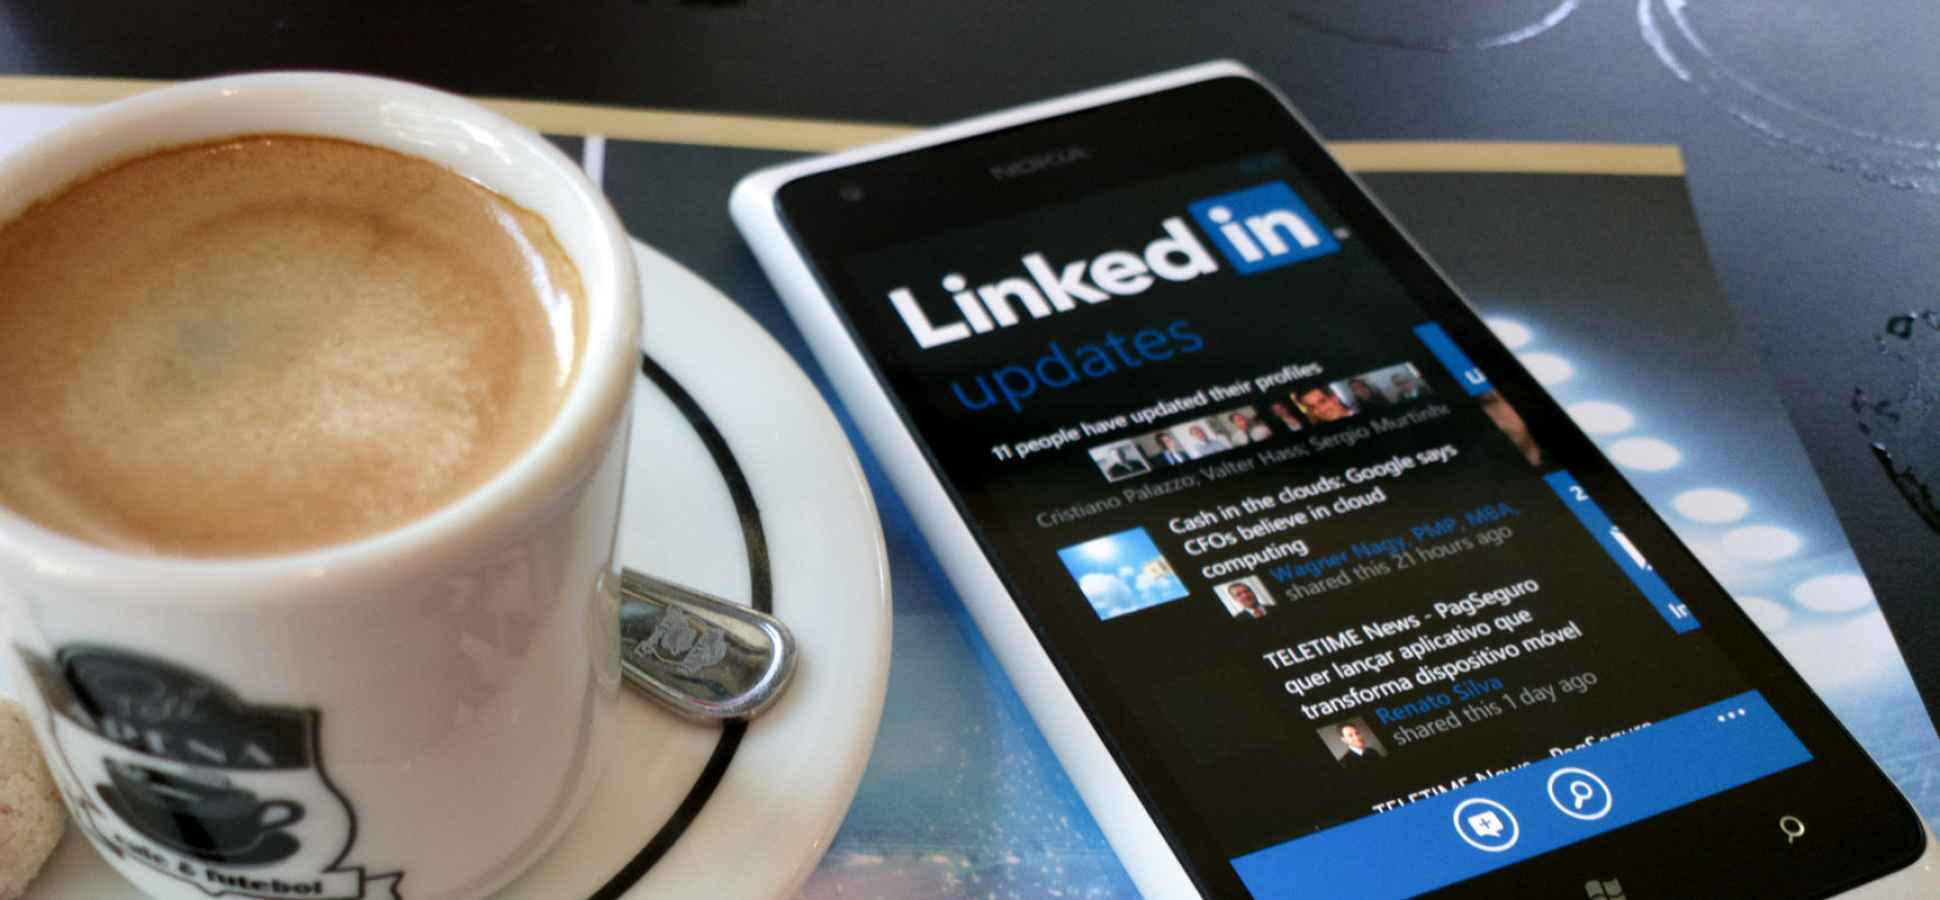 LinkedIn: 5 Critical LinkedIn Optimizations That Take 5 Minutes Or